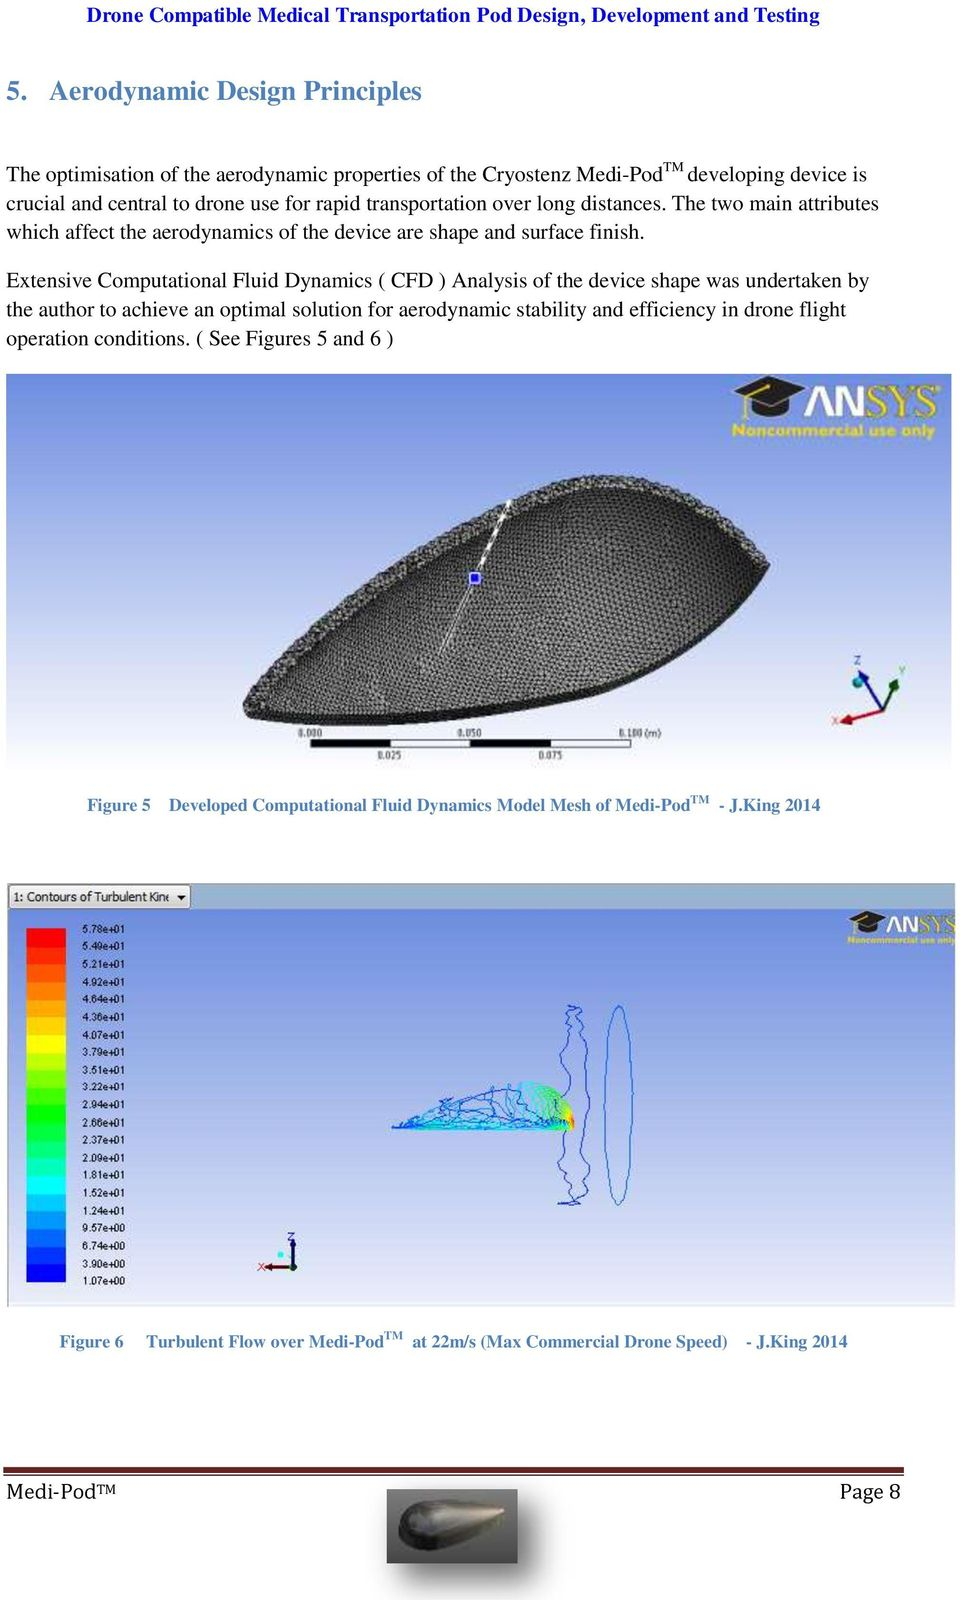 Extensive Computational Fluid Dynamics ( CFD ) Analysis of the device shape was undertaken by the author to achieve an optimal solution for aerodynamic stability and efficiency in drone